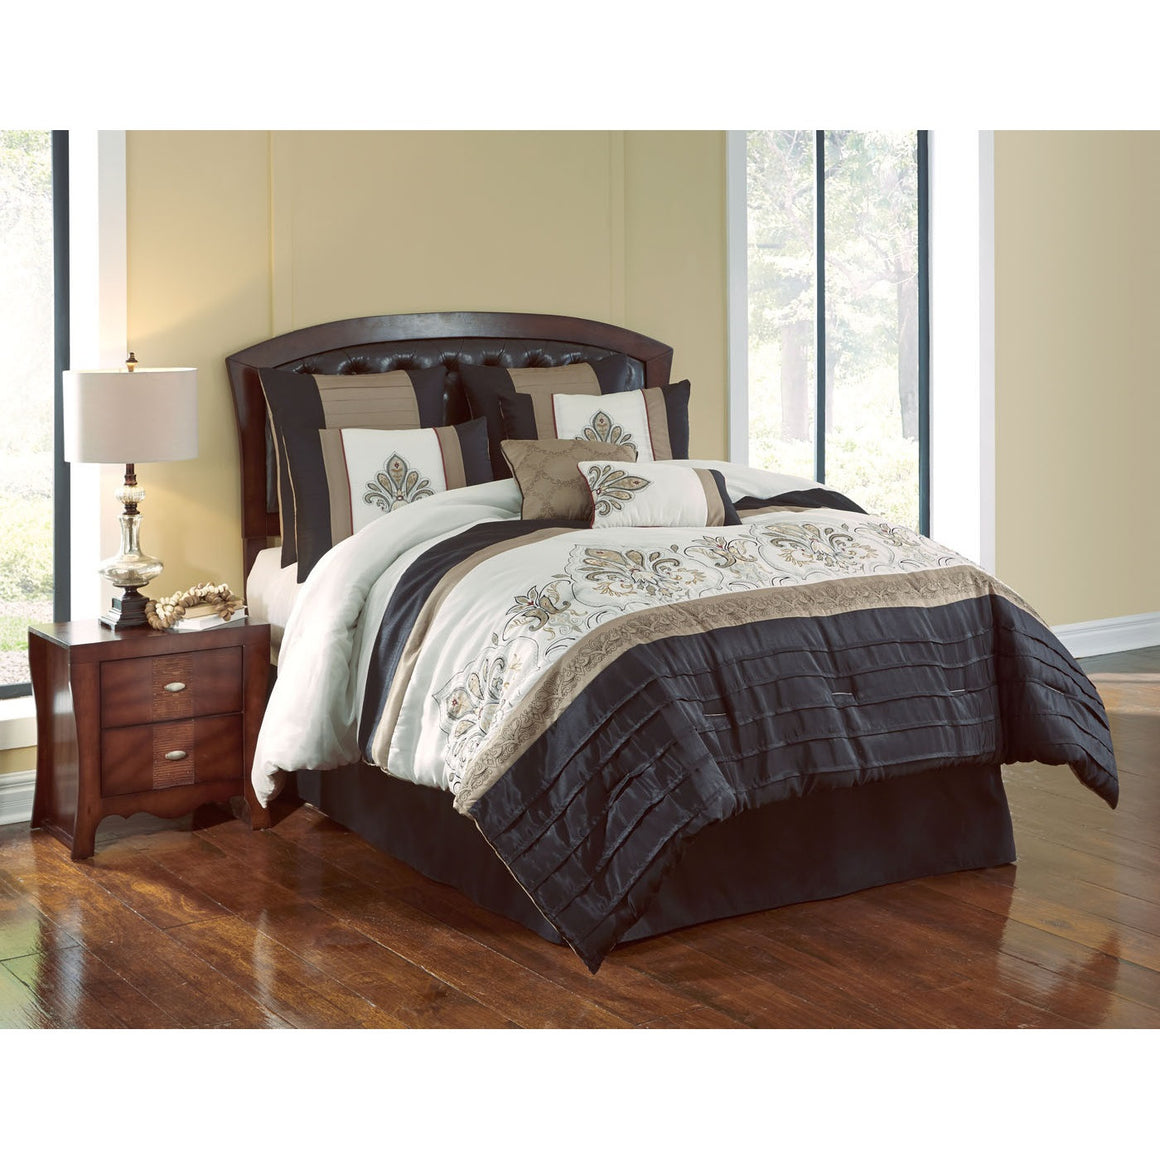 Blackmoore Comforter Bed Set